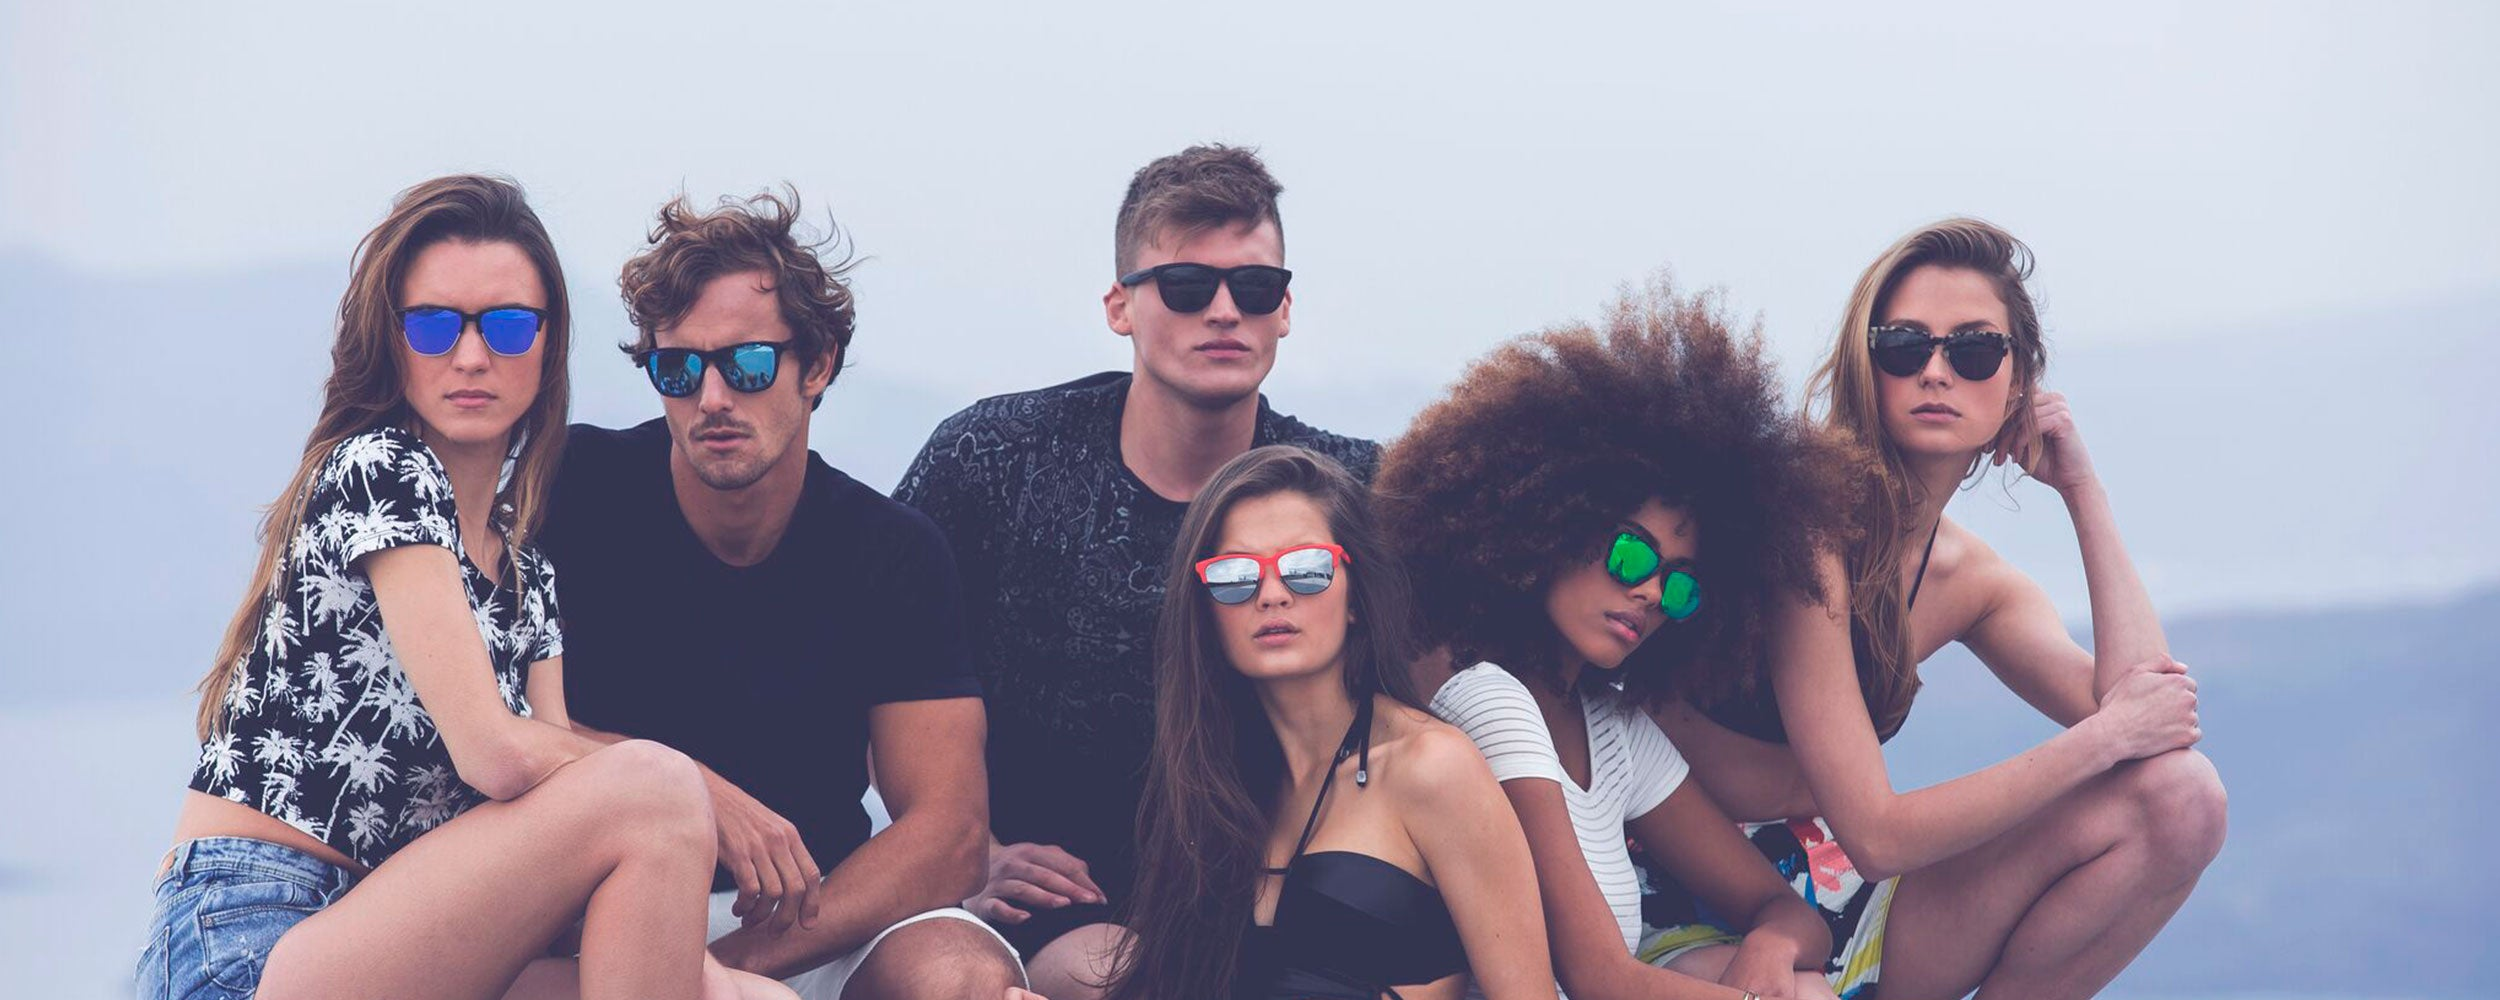 Polarized lenses sunglasses